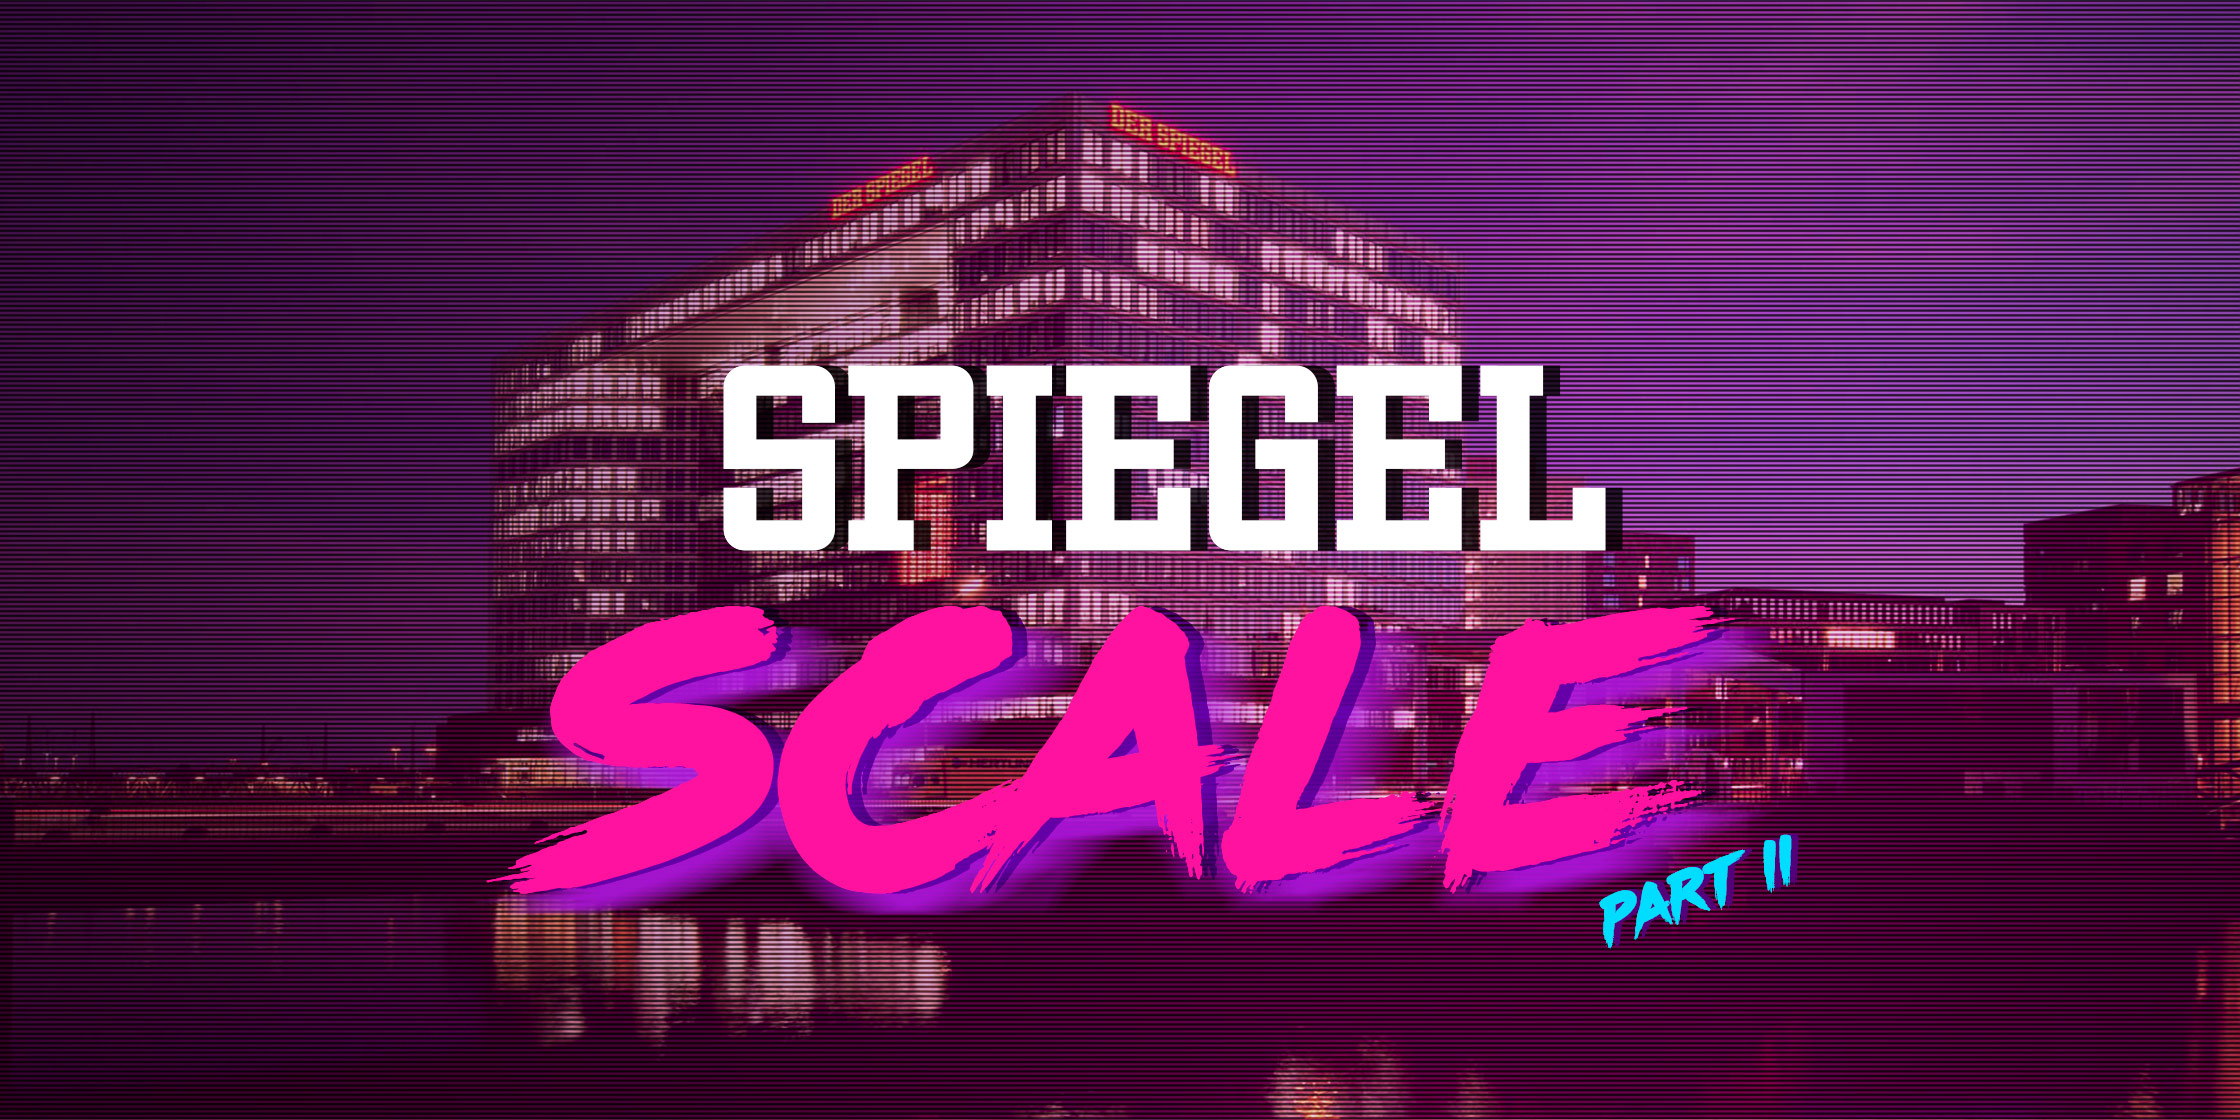 Statamic at SPIEGEL Scale (Part 2) - Statamic Blog